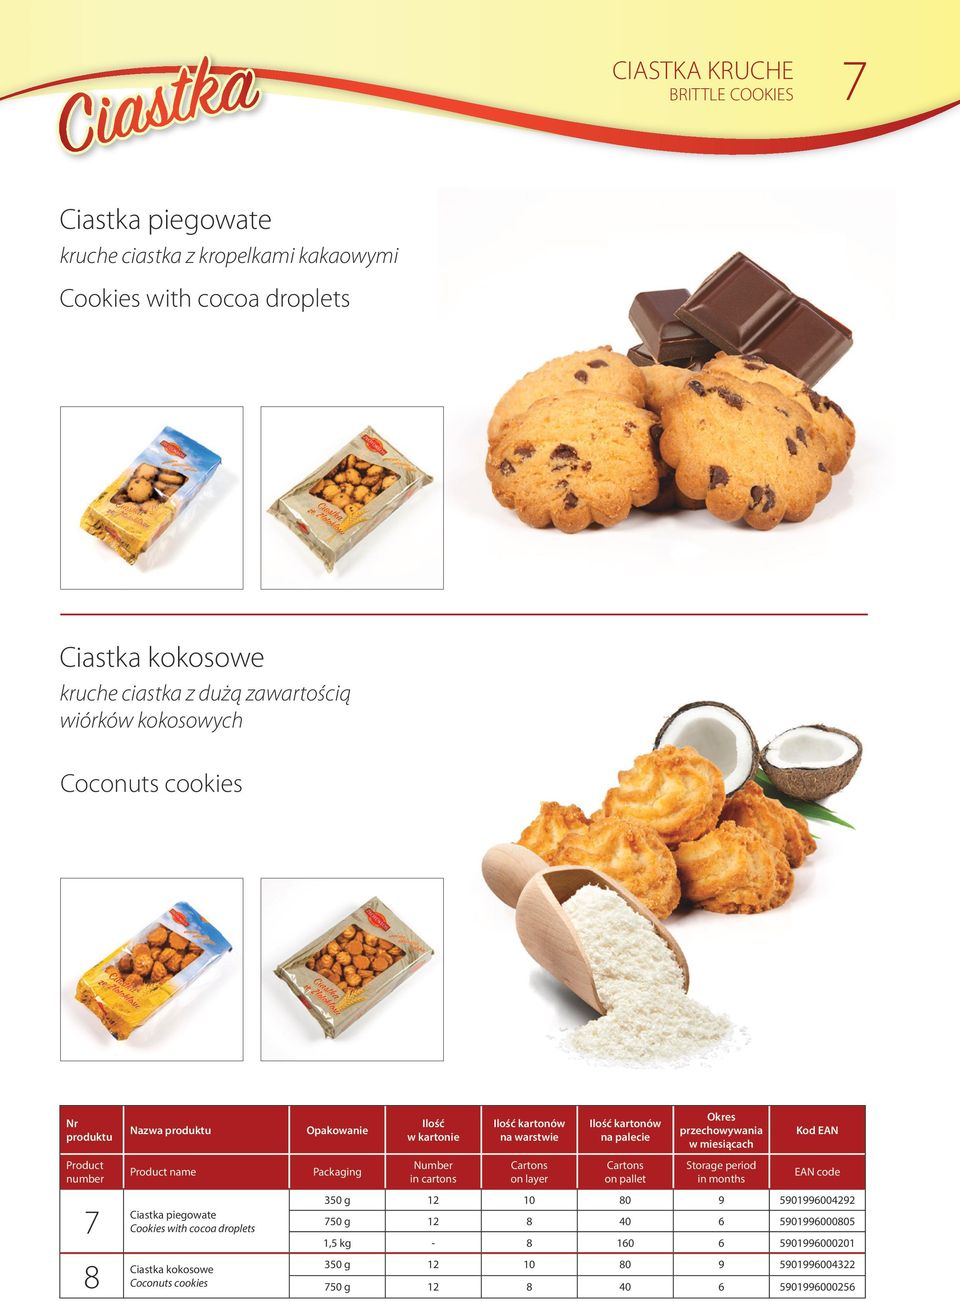 Ciastka piegowate Cookies with cocoa droplets Ciastka kokosowe Coconuts cookies 350 g 12 10 80 9 5901996004292